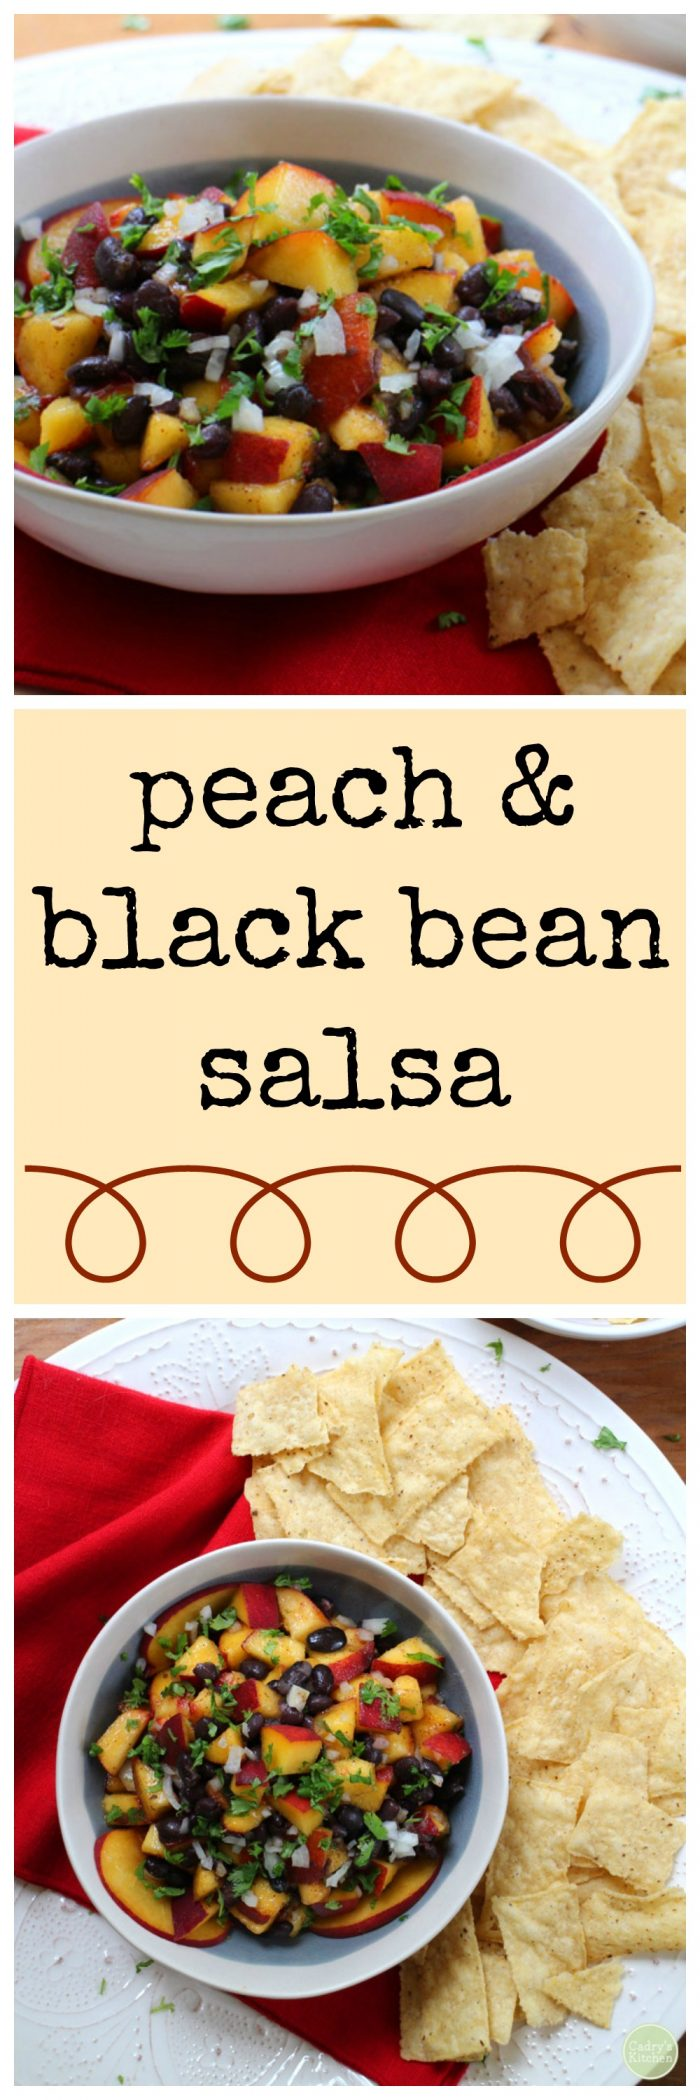 Sweet and spicy! Peach and black bean salsa | cadryskitchen.com